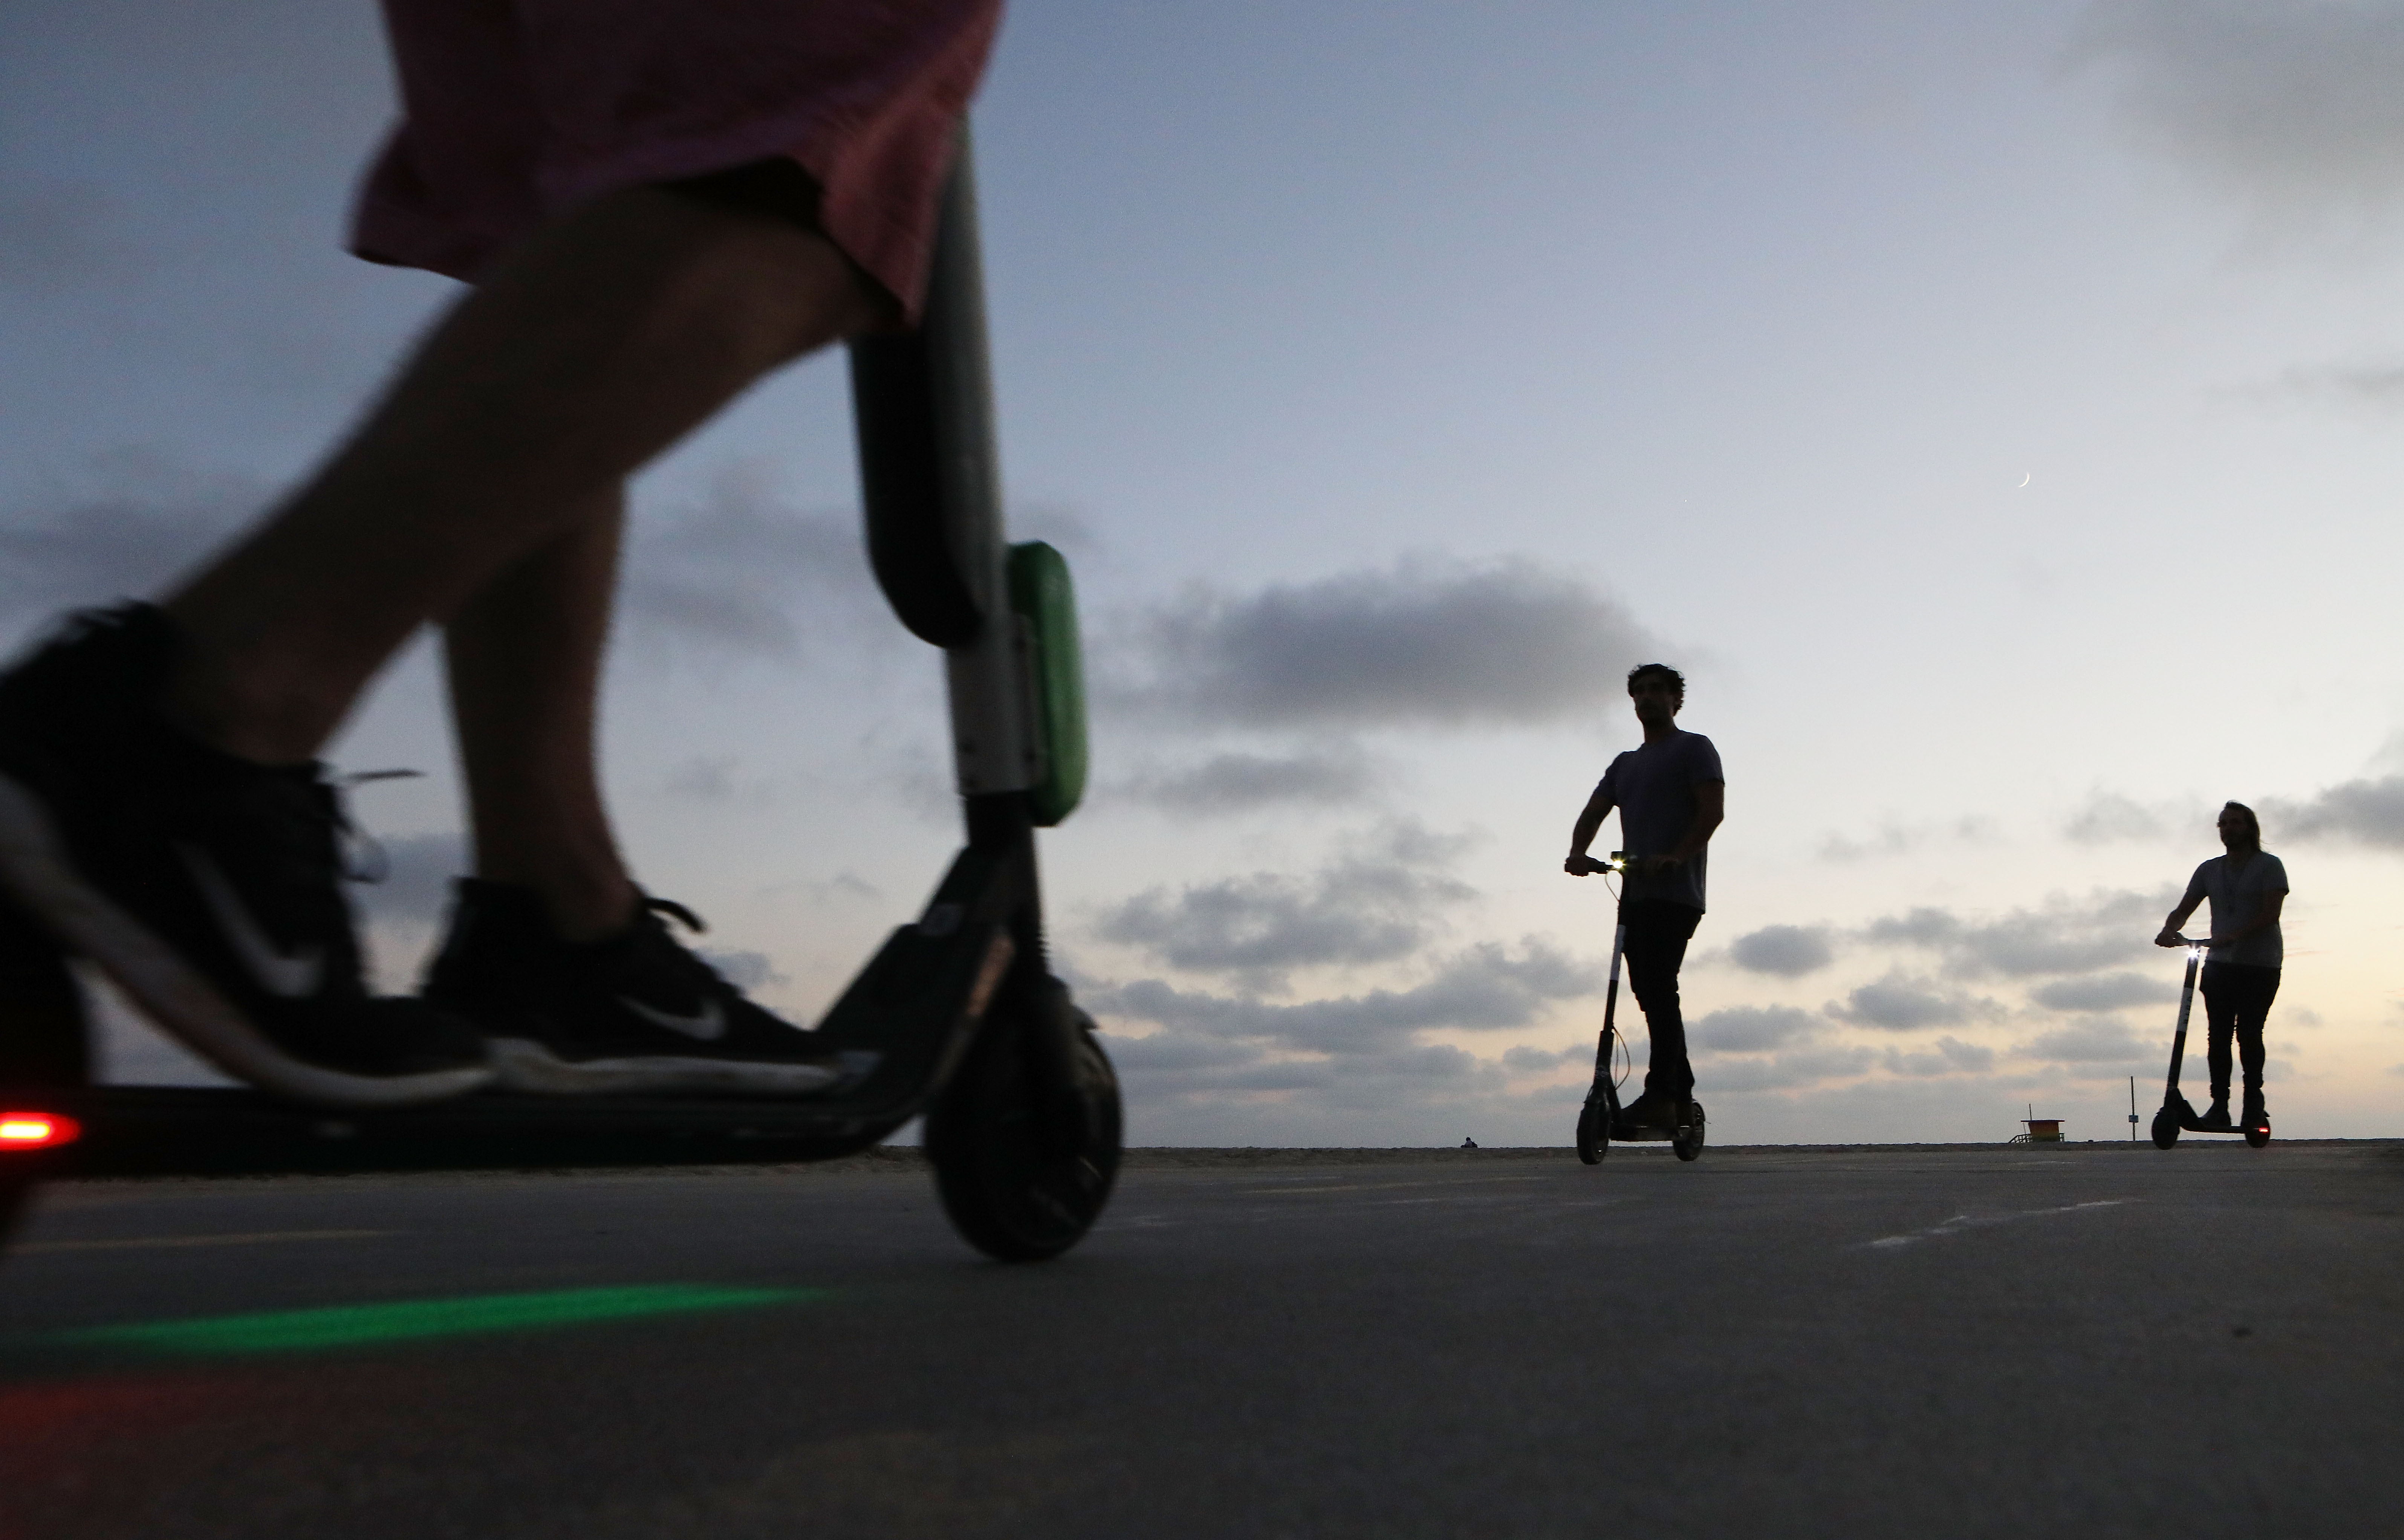 People ride shared dockless electric scooters along Venice Beach on August 13, 2018 in Los Angeles, California. Shared e-scooter startups Bird and Lime have rapidly expanded in the city. Some city residents complain the controversial e-scooters are dangerous for pedestrians and sometimes clog sidewalks. A Los Angeles Councilmember has proposed a ban on the scooters until regulations can be worked out. (Photo by Mario Tama/Getty Images)